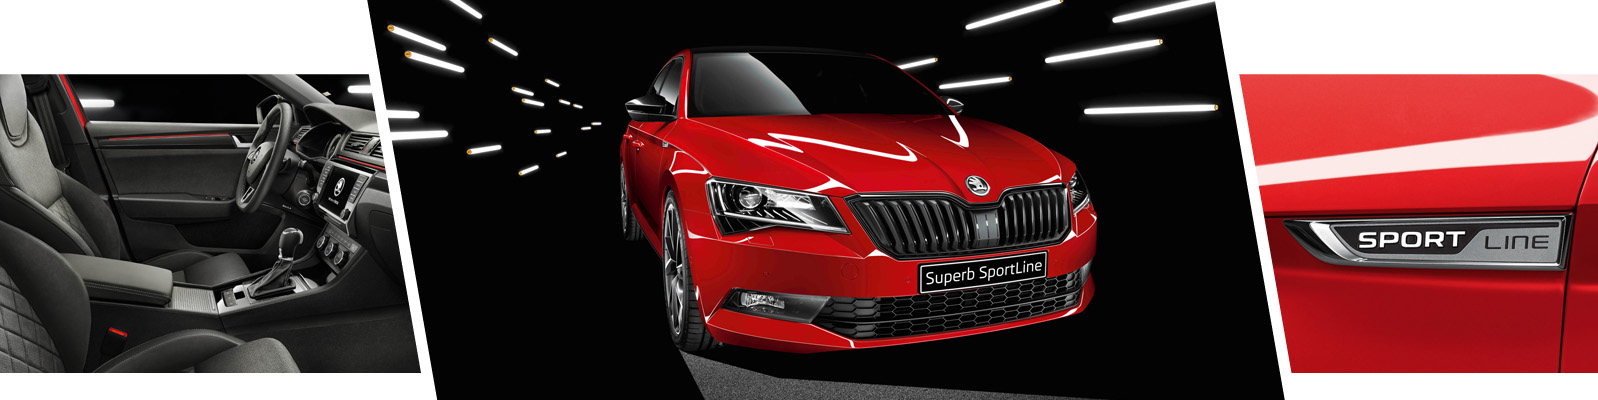 Luxury meets power with the SKODA SportLine range From Bickerton ŠKODA, Sheffield, South Yorkshire.